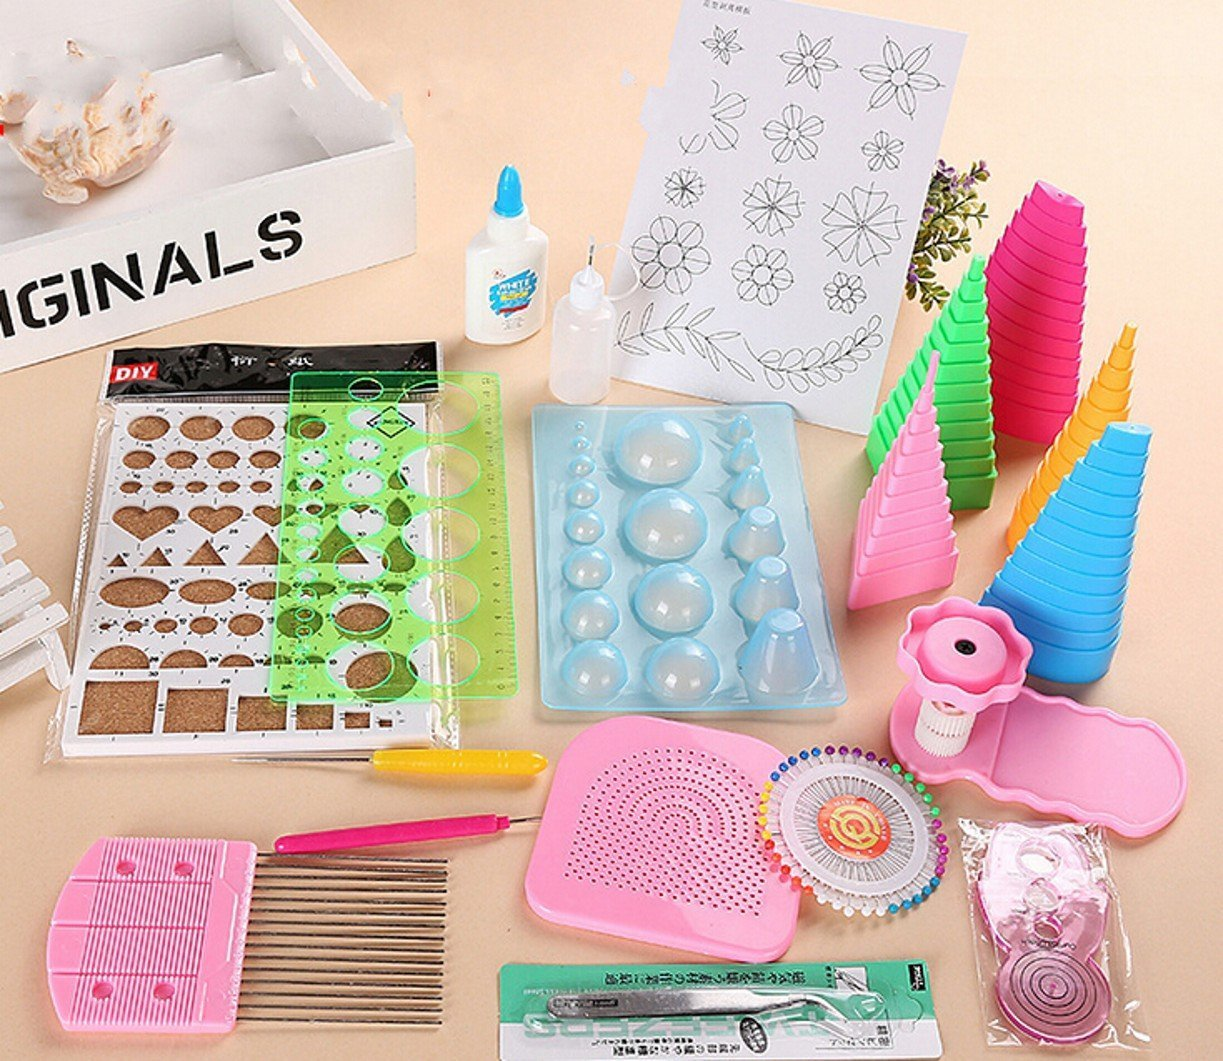 CHENGYIDA DIY Handmade Paper Quilling Tools Set Kit Stripes Tweezer Pins Slotted Tool Origami Paper Craft Decorating by CHENGYIDA